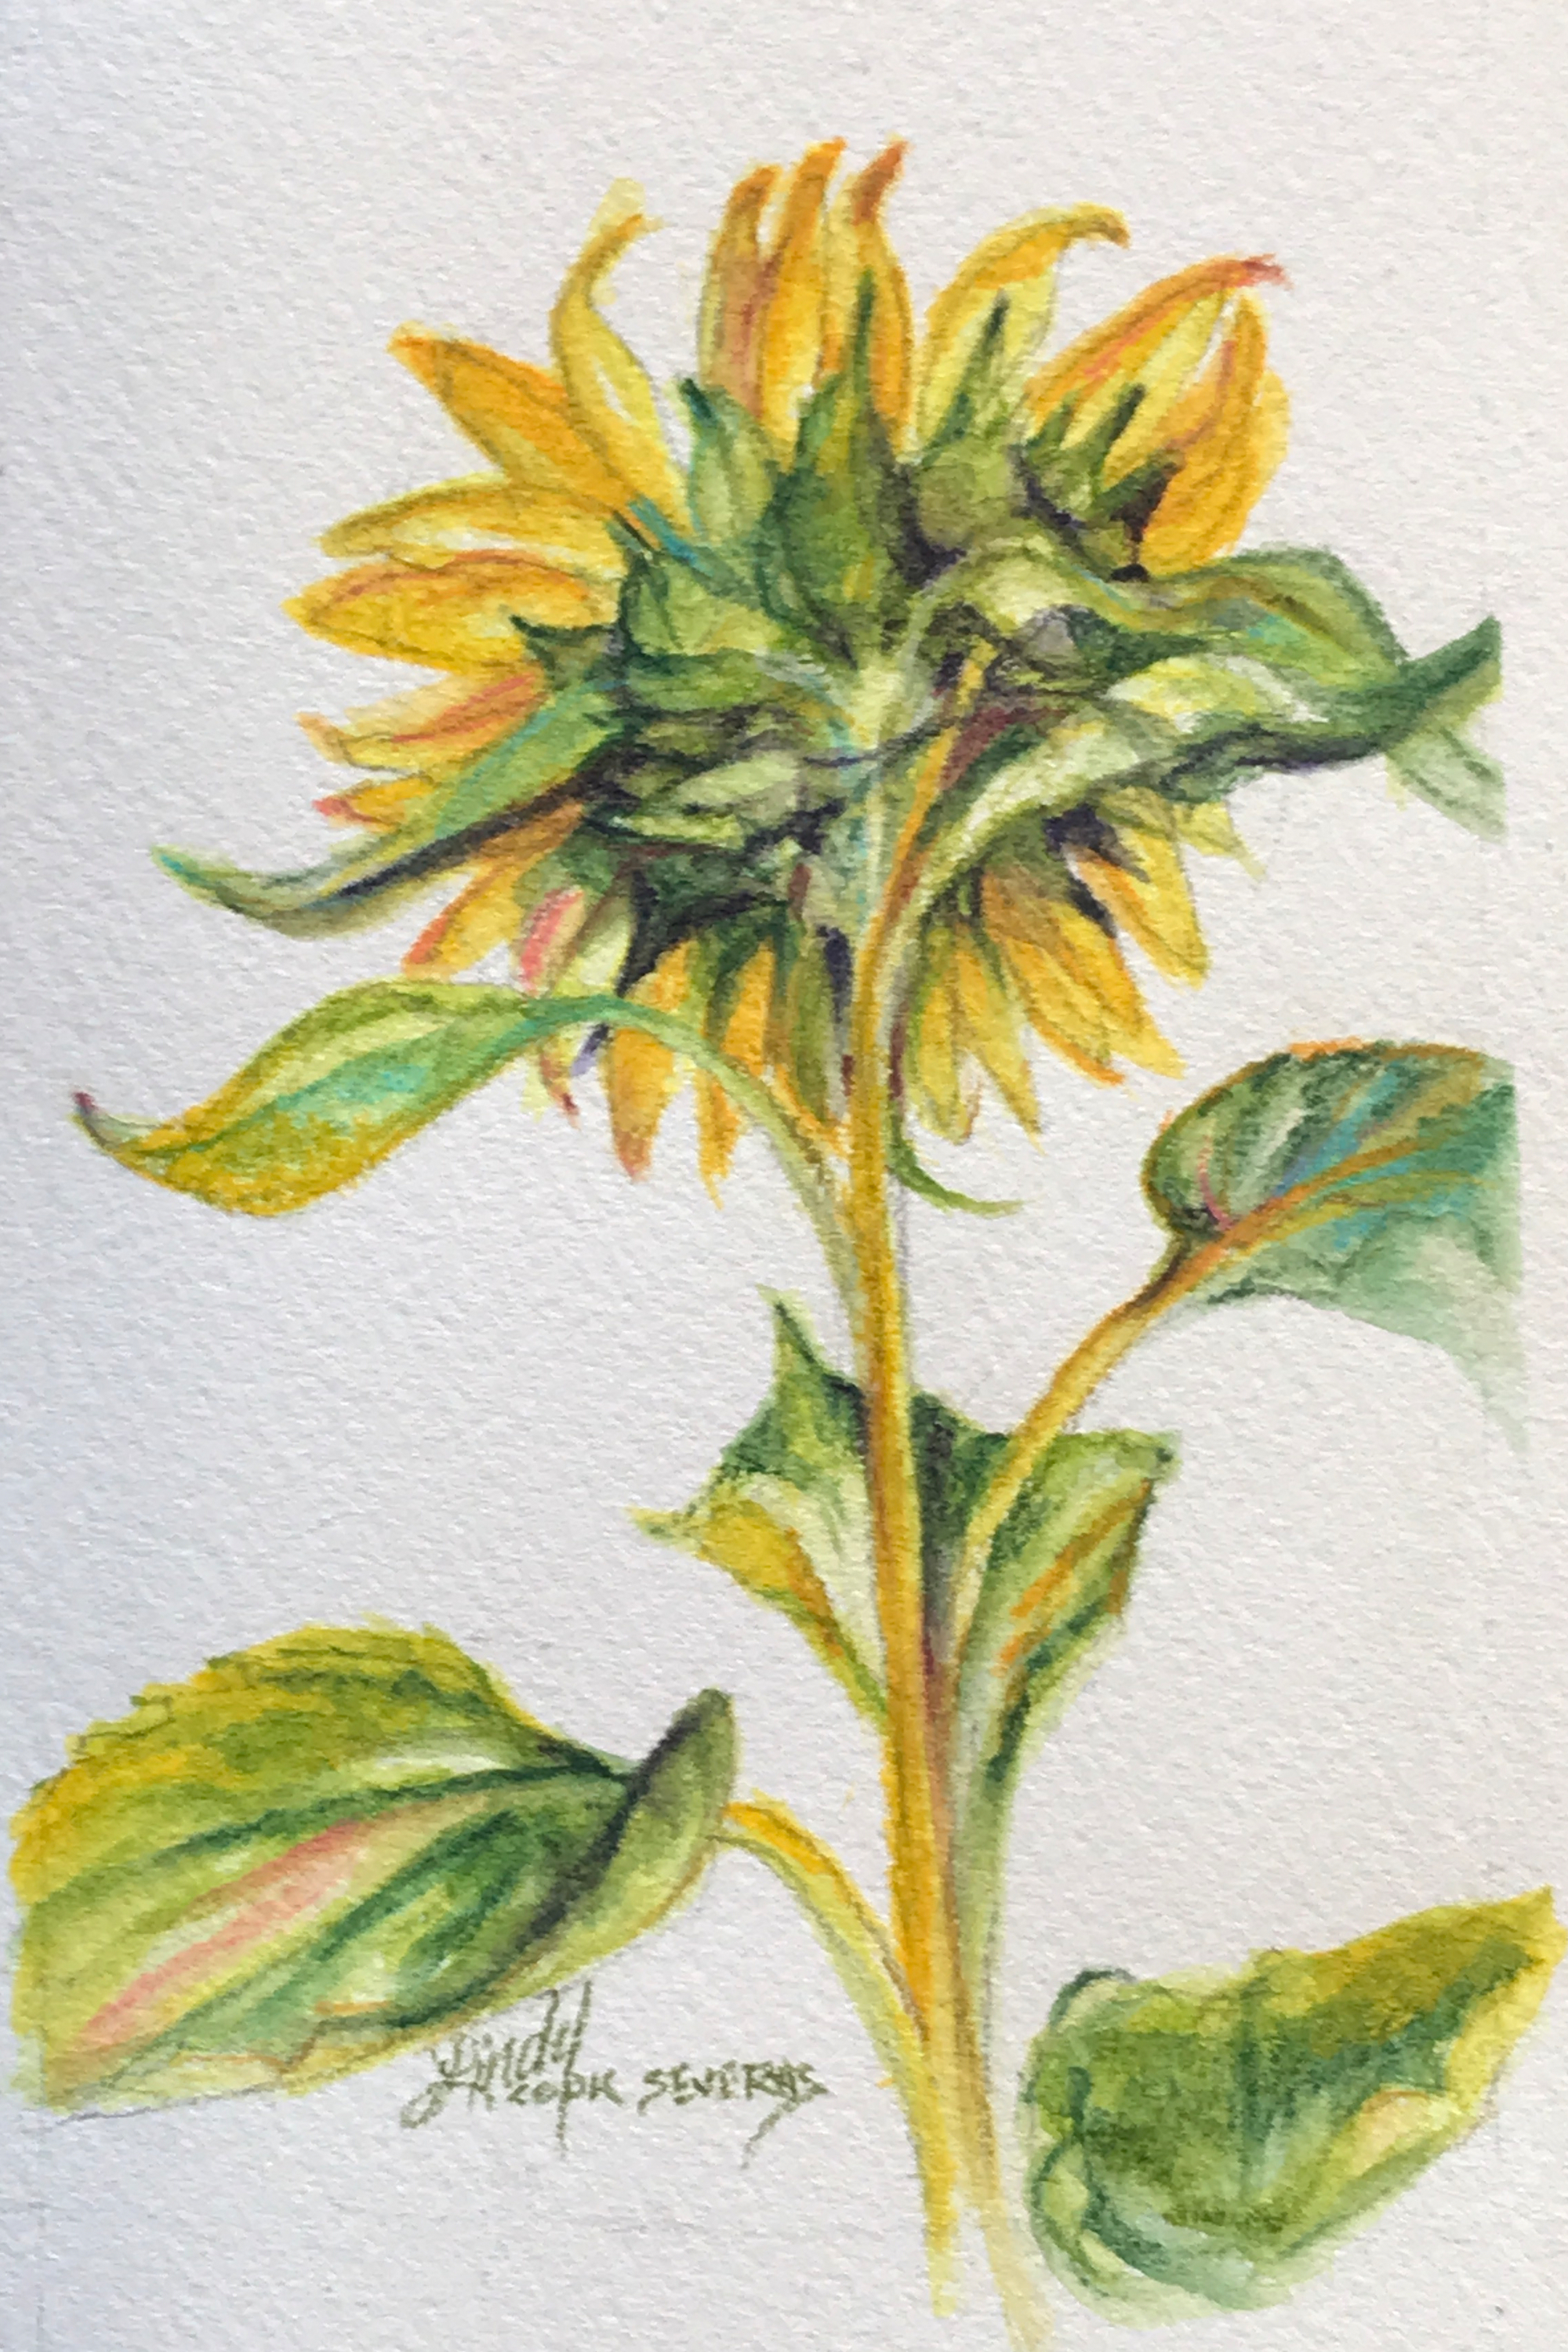 Shy sunflower 6x4 watercolor lindy c severns ahccra